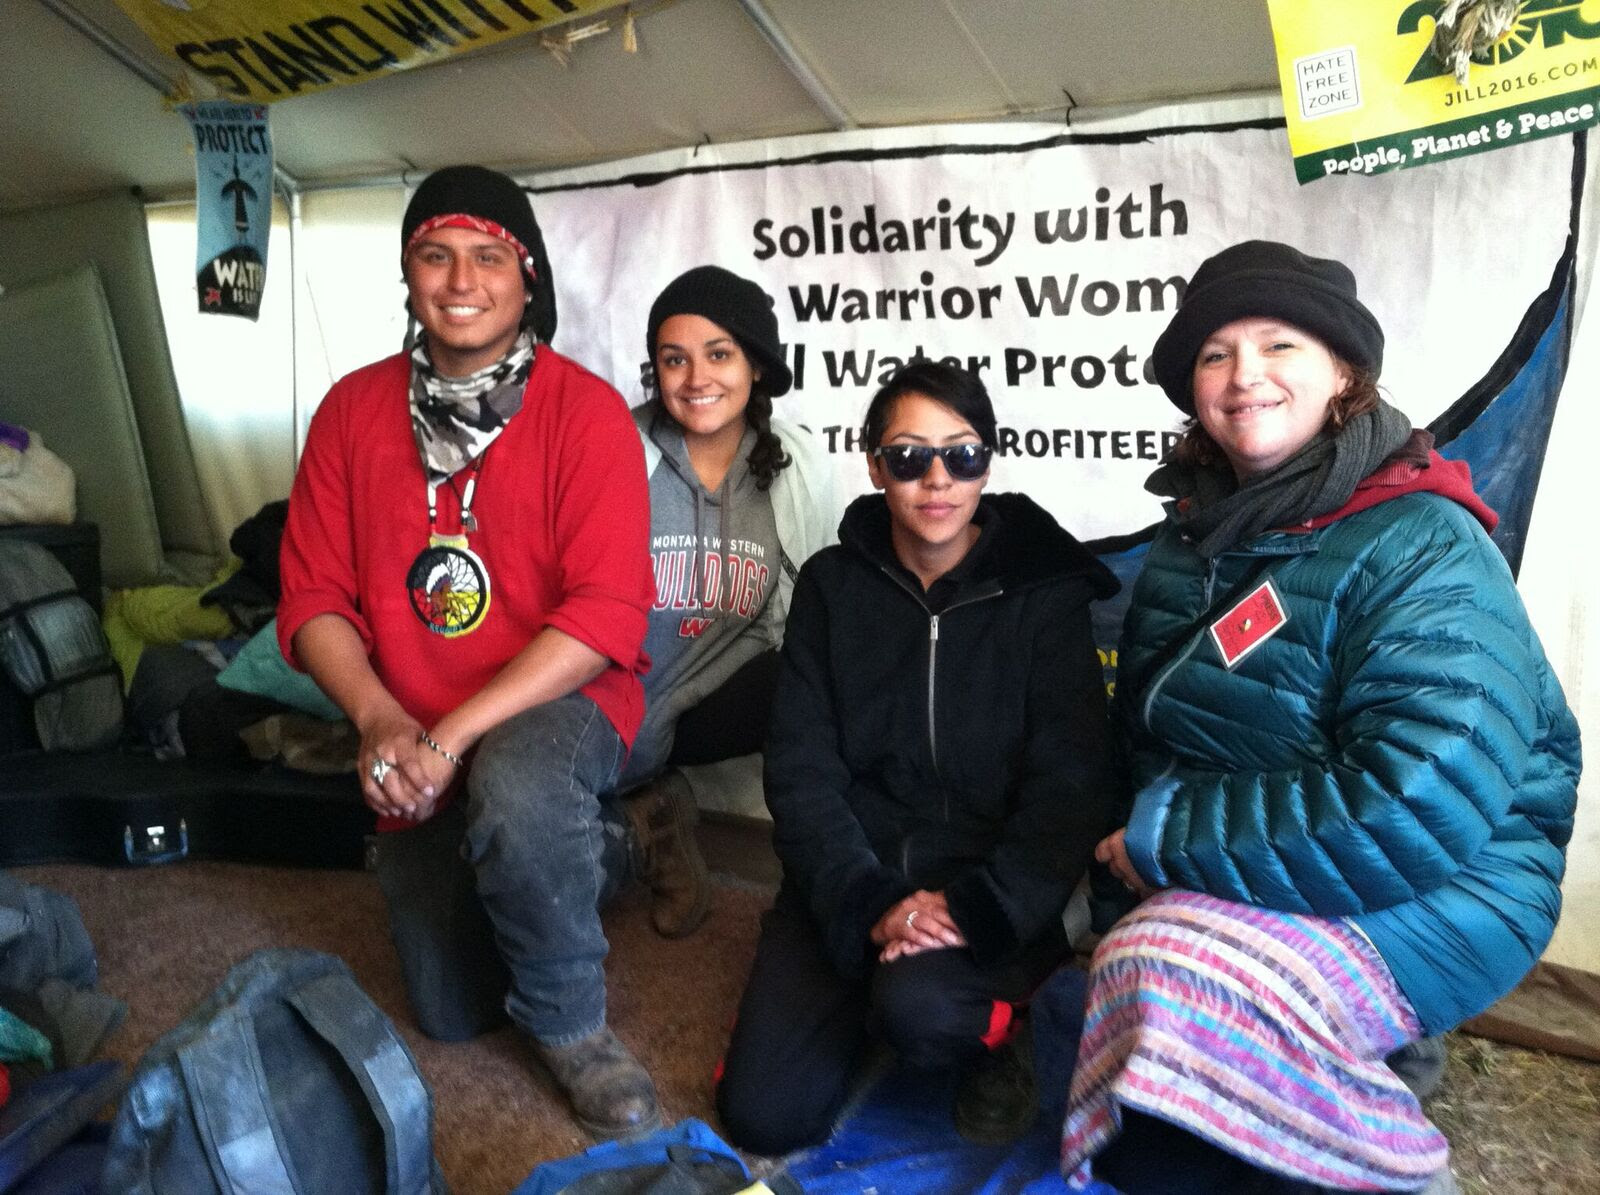 Members of the International Indigenous Youth Council and Gina Petry (right) with RW/FSP banner